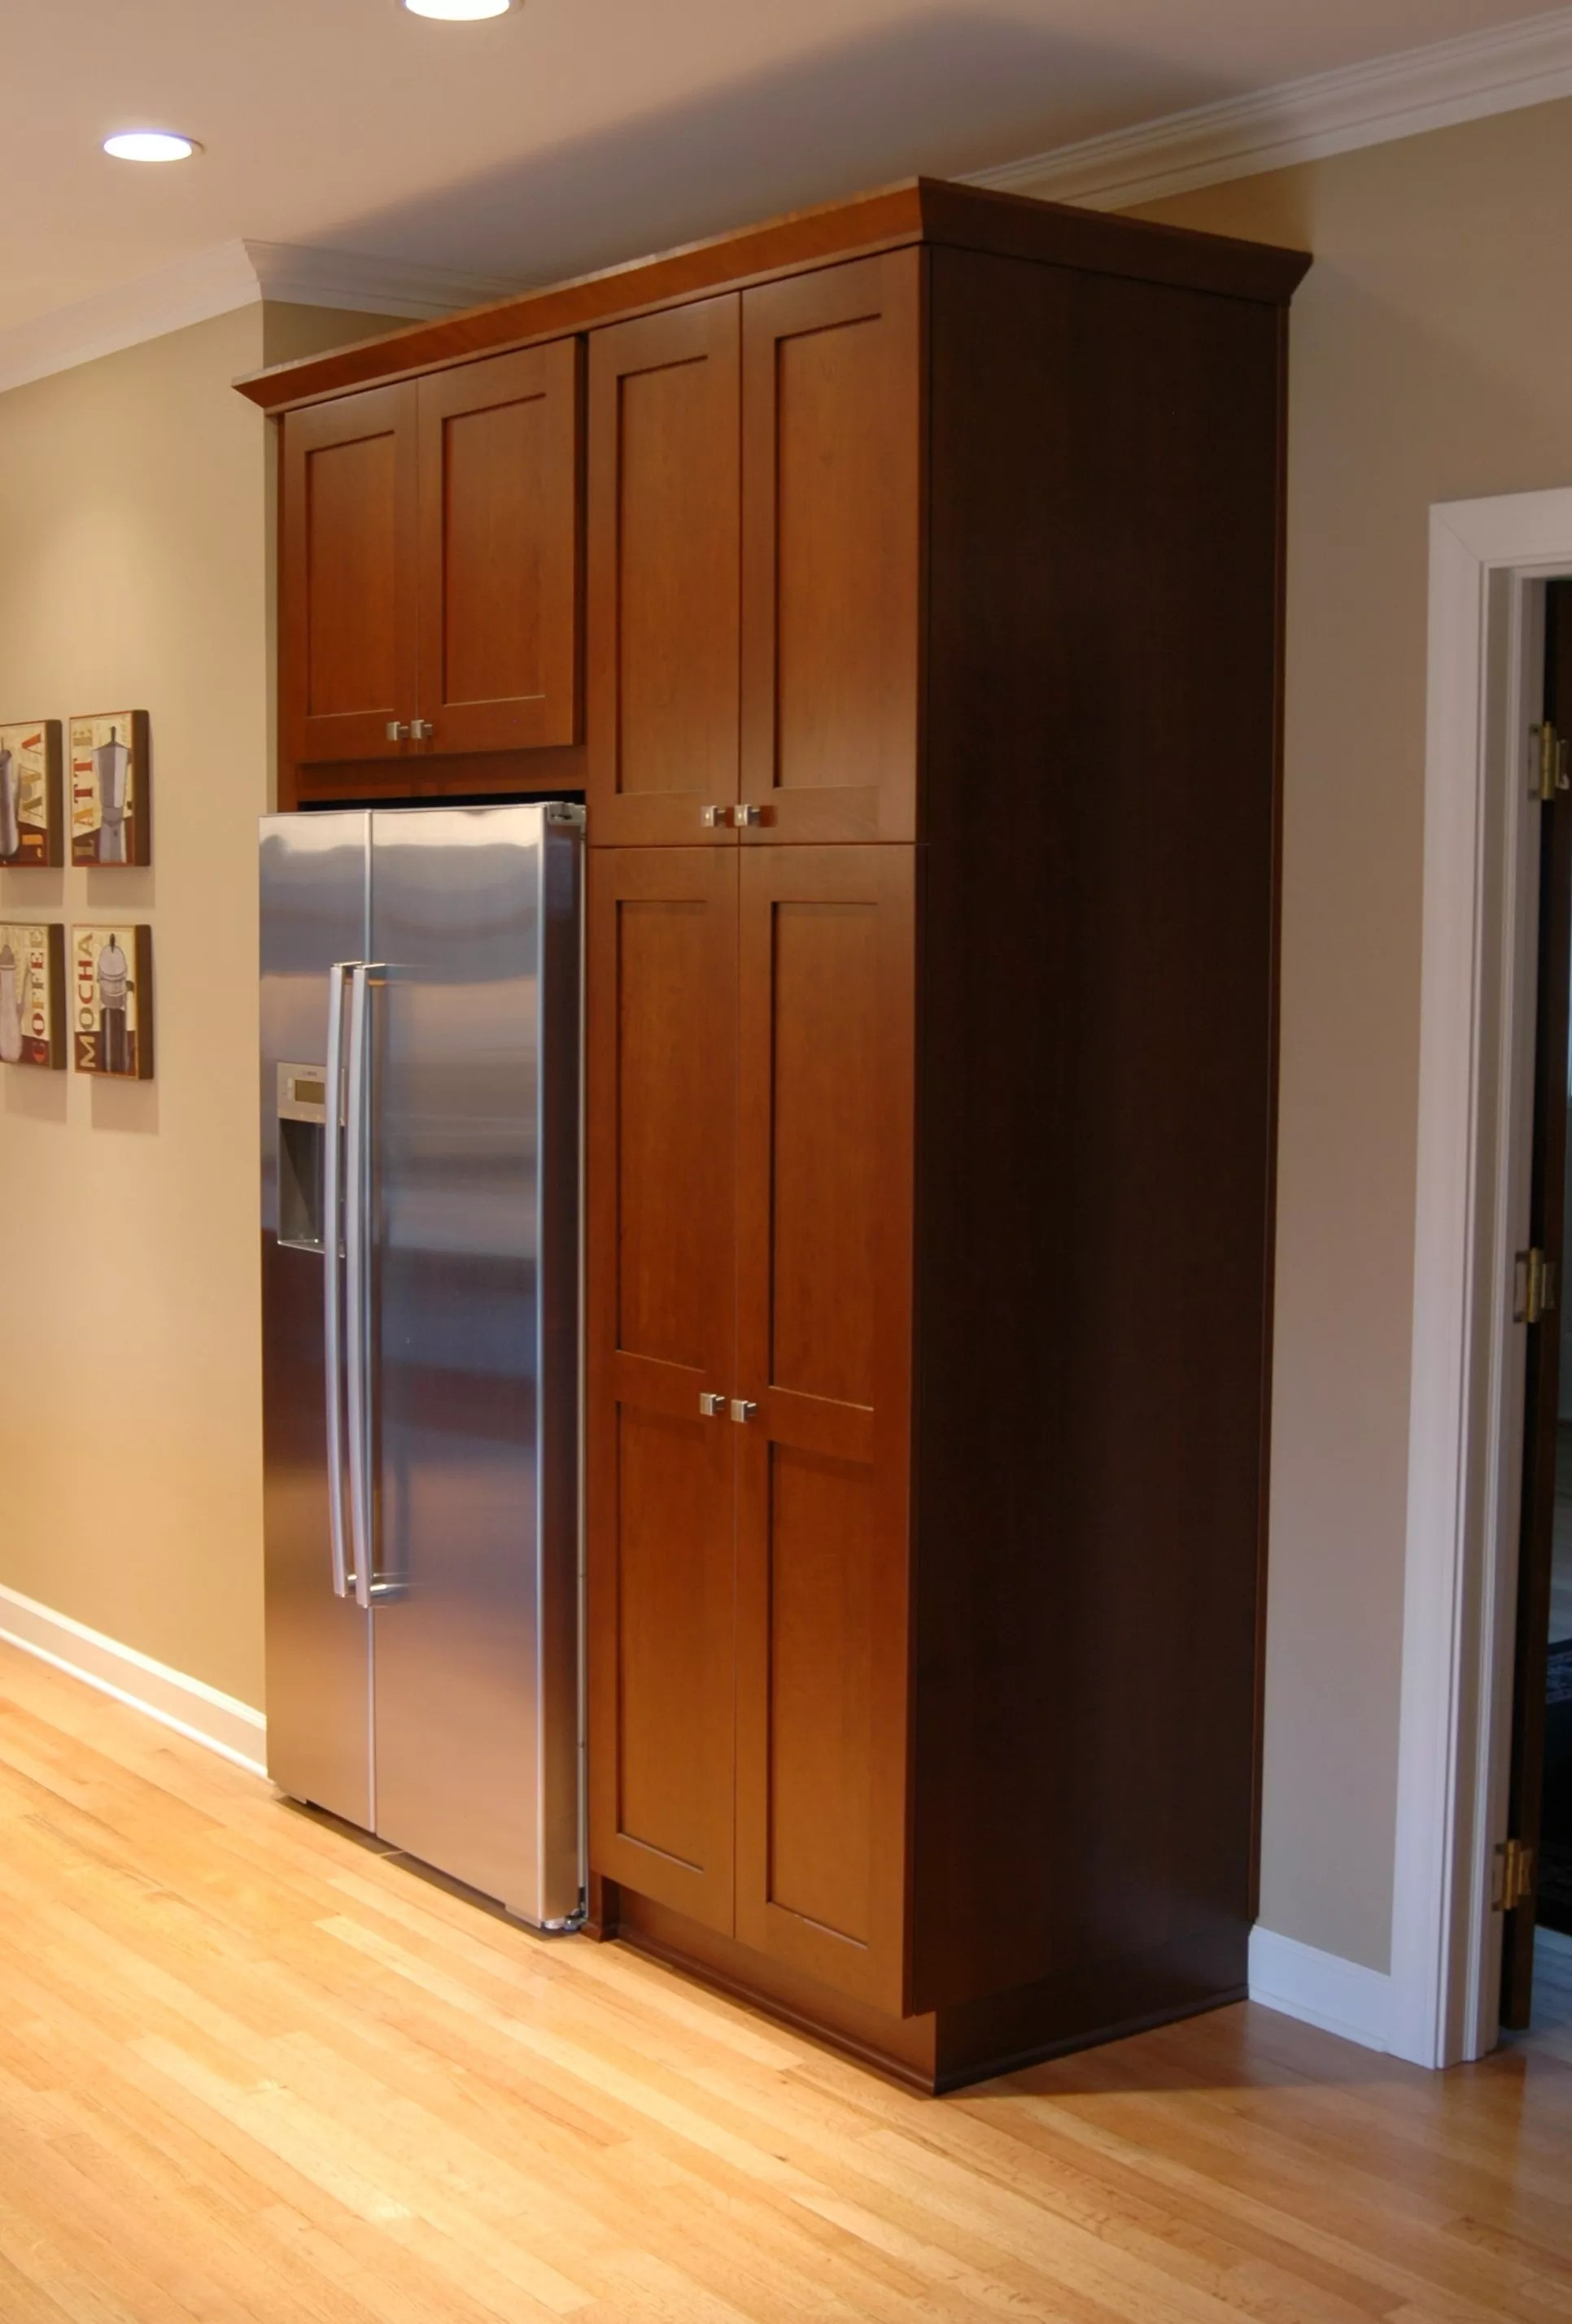 3 Cabinet Pantry And Counter Depth Refrigerator Replaces